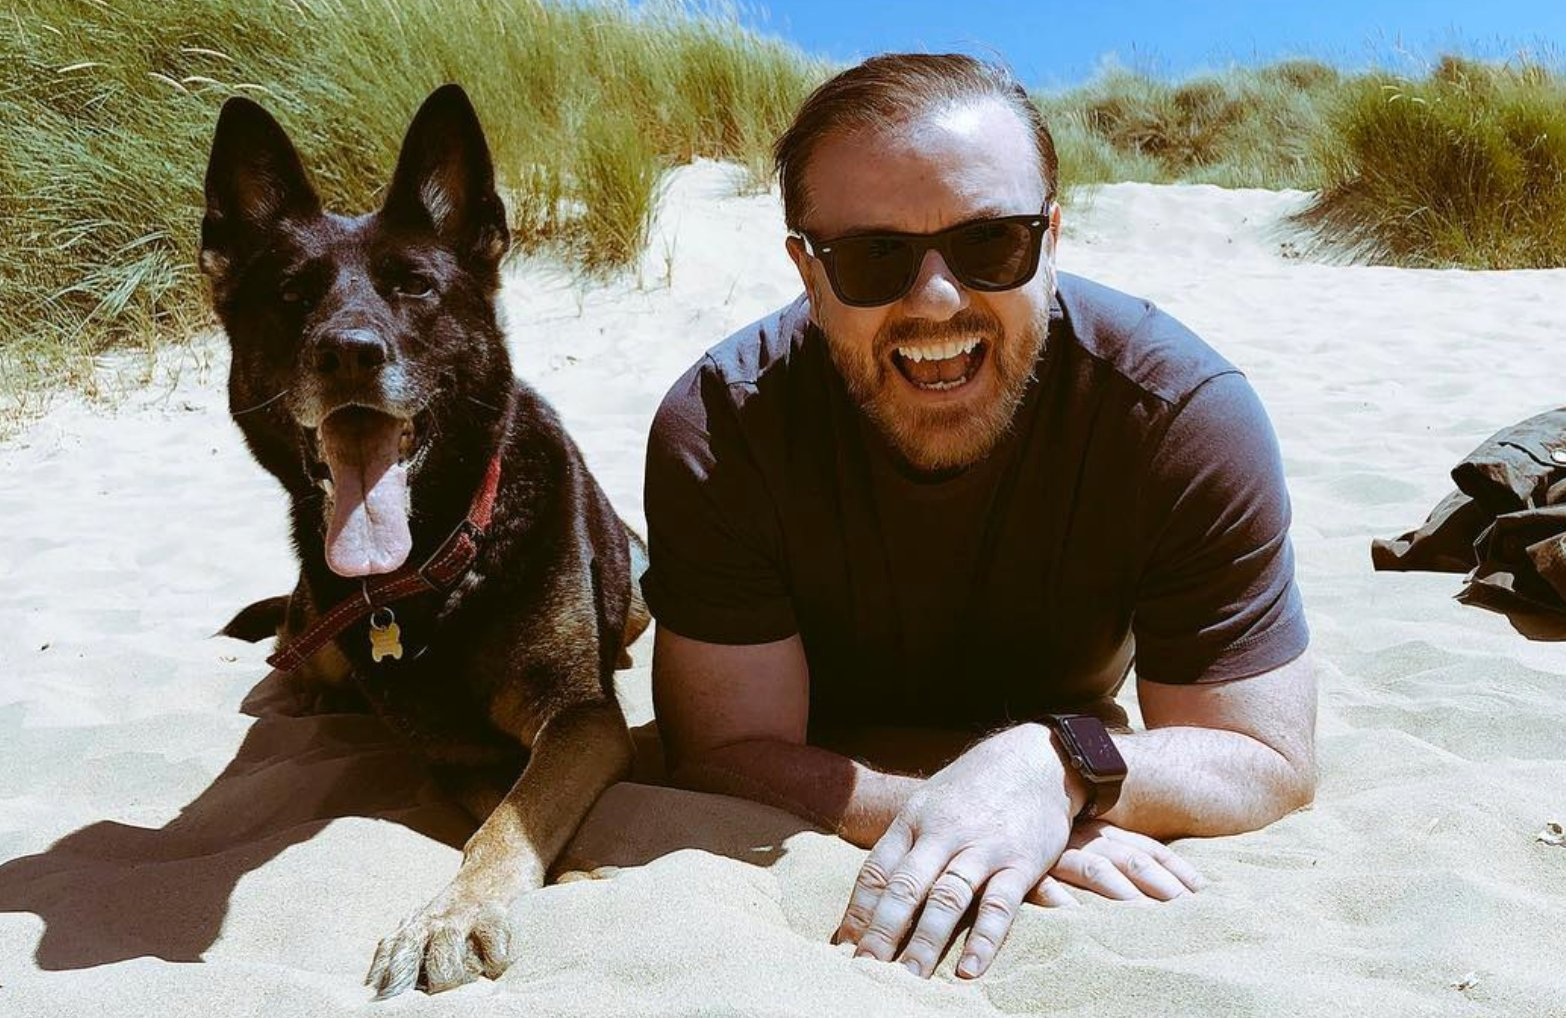 Comedian Ricky Gervais sits on the beach with a dog